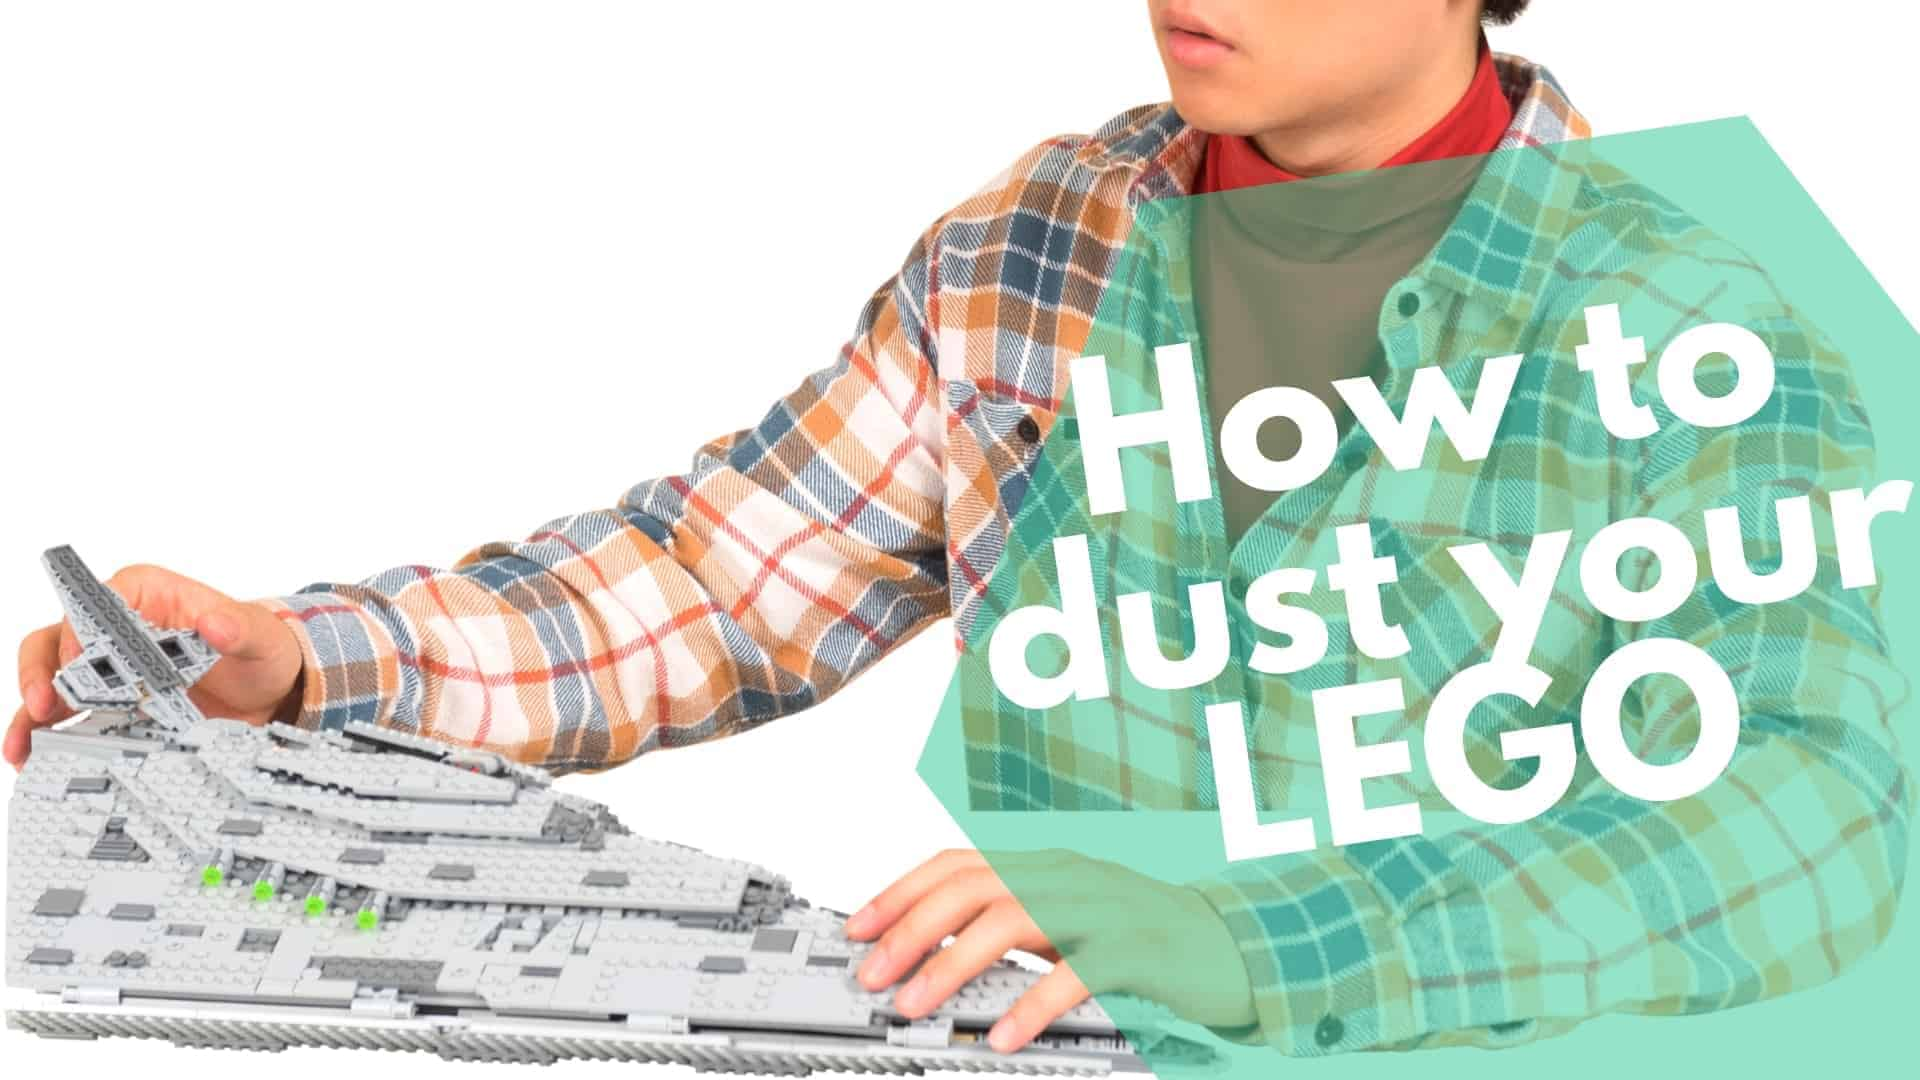 How-to-dust-your-LEGO